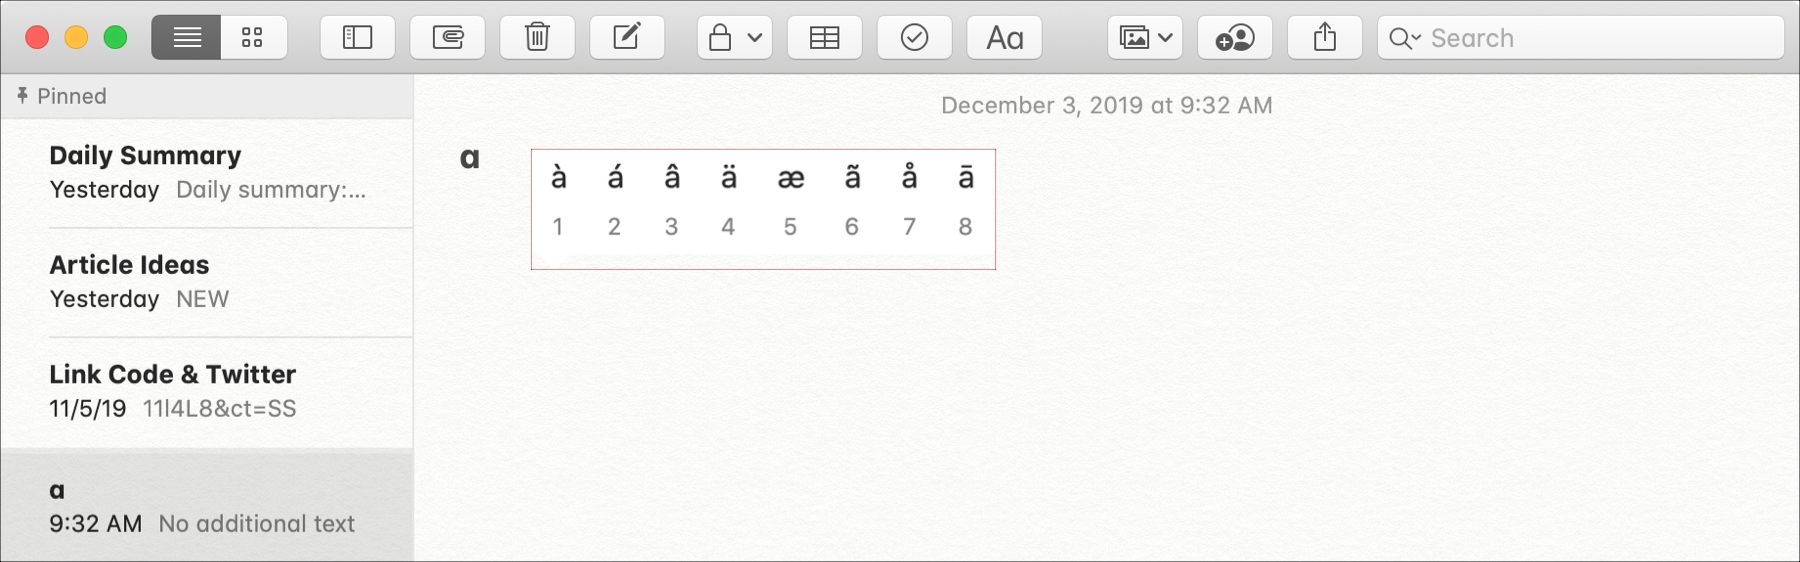 Letter accents in Notes on Mac